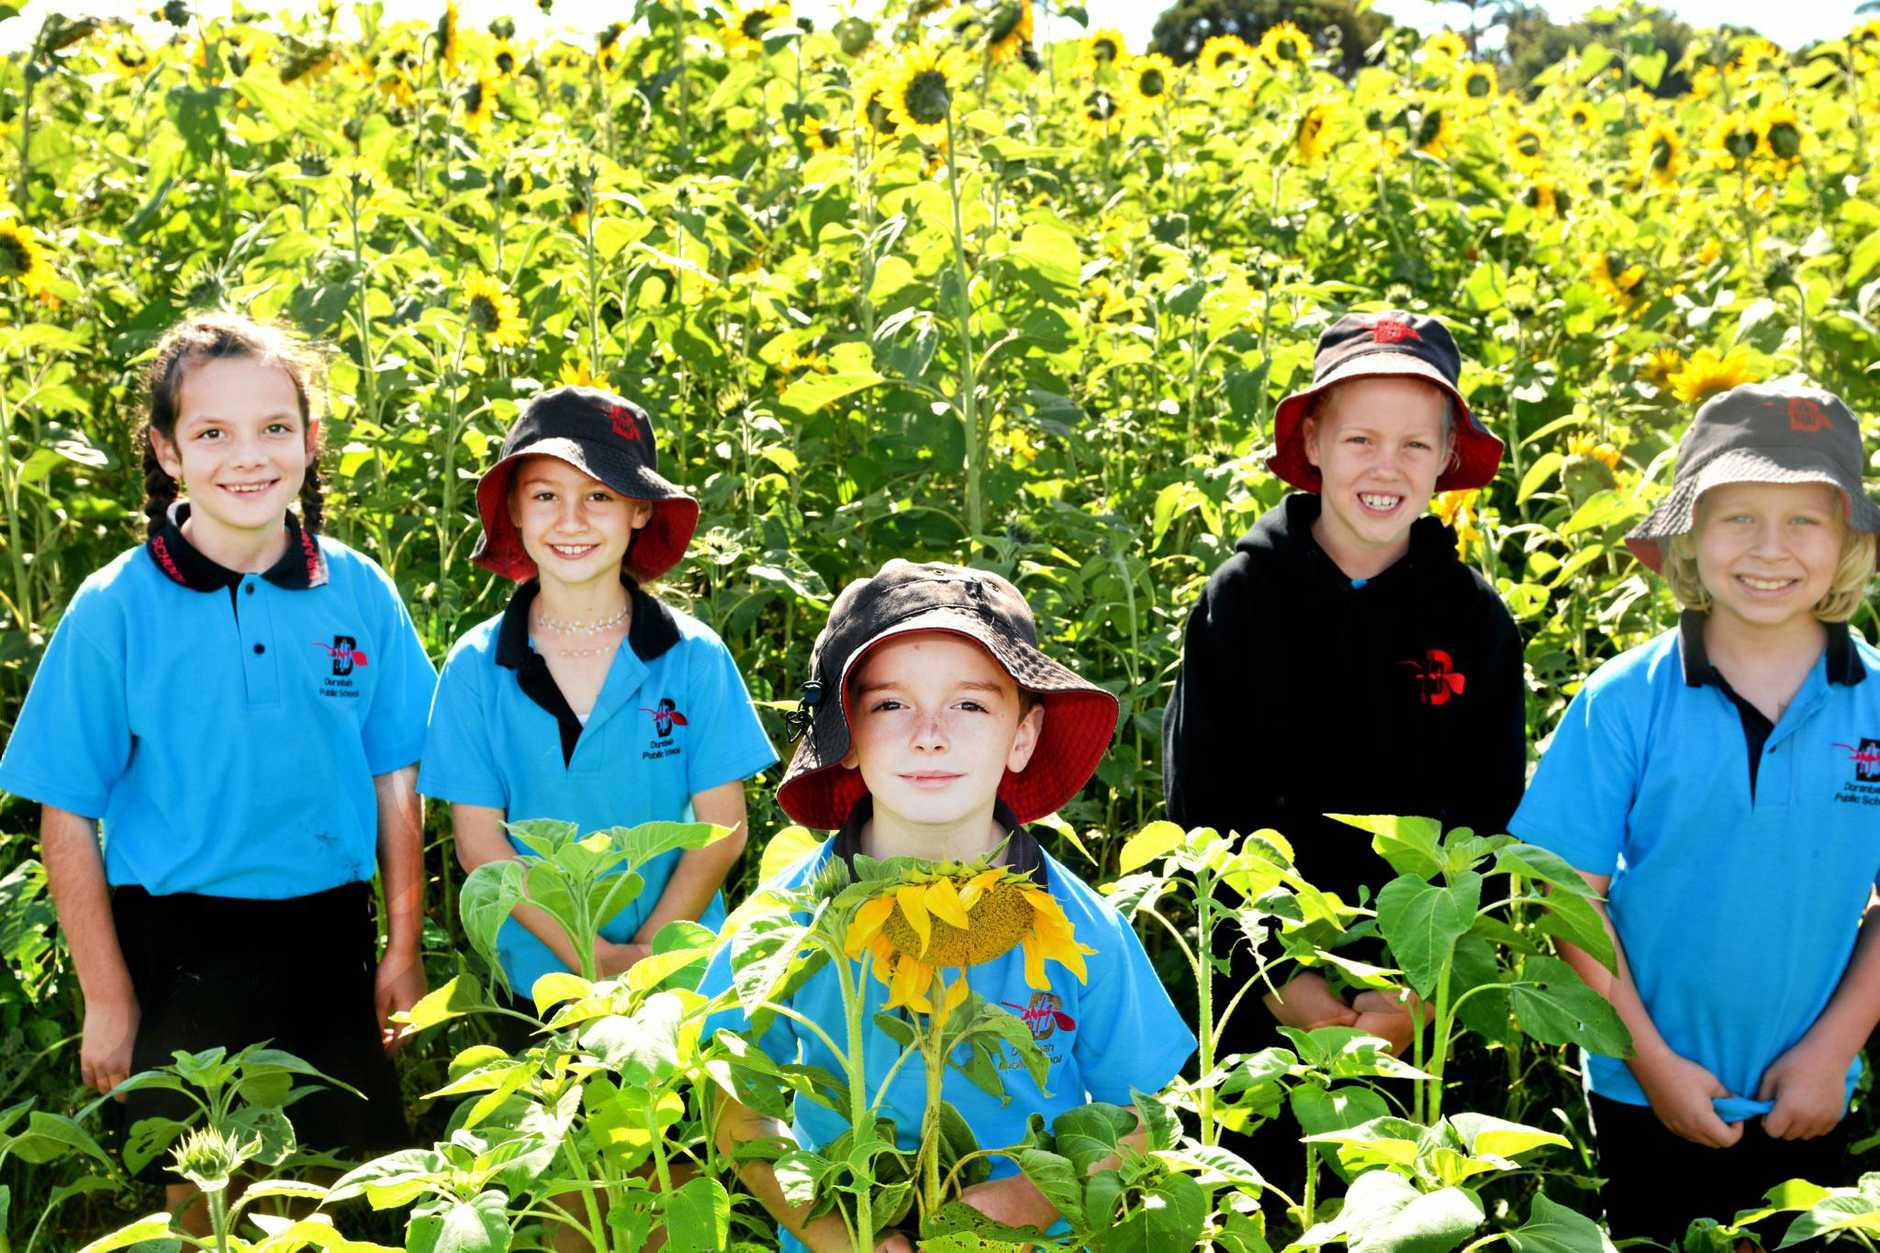 Duranbah Public School students Lilly Scaife, Liv Ivey, Jimmy Barron, Arella Thornley and Sonny Kershaw checkout the Sunflower crops at Farm & Co, Cudgen